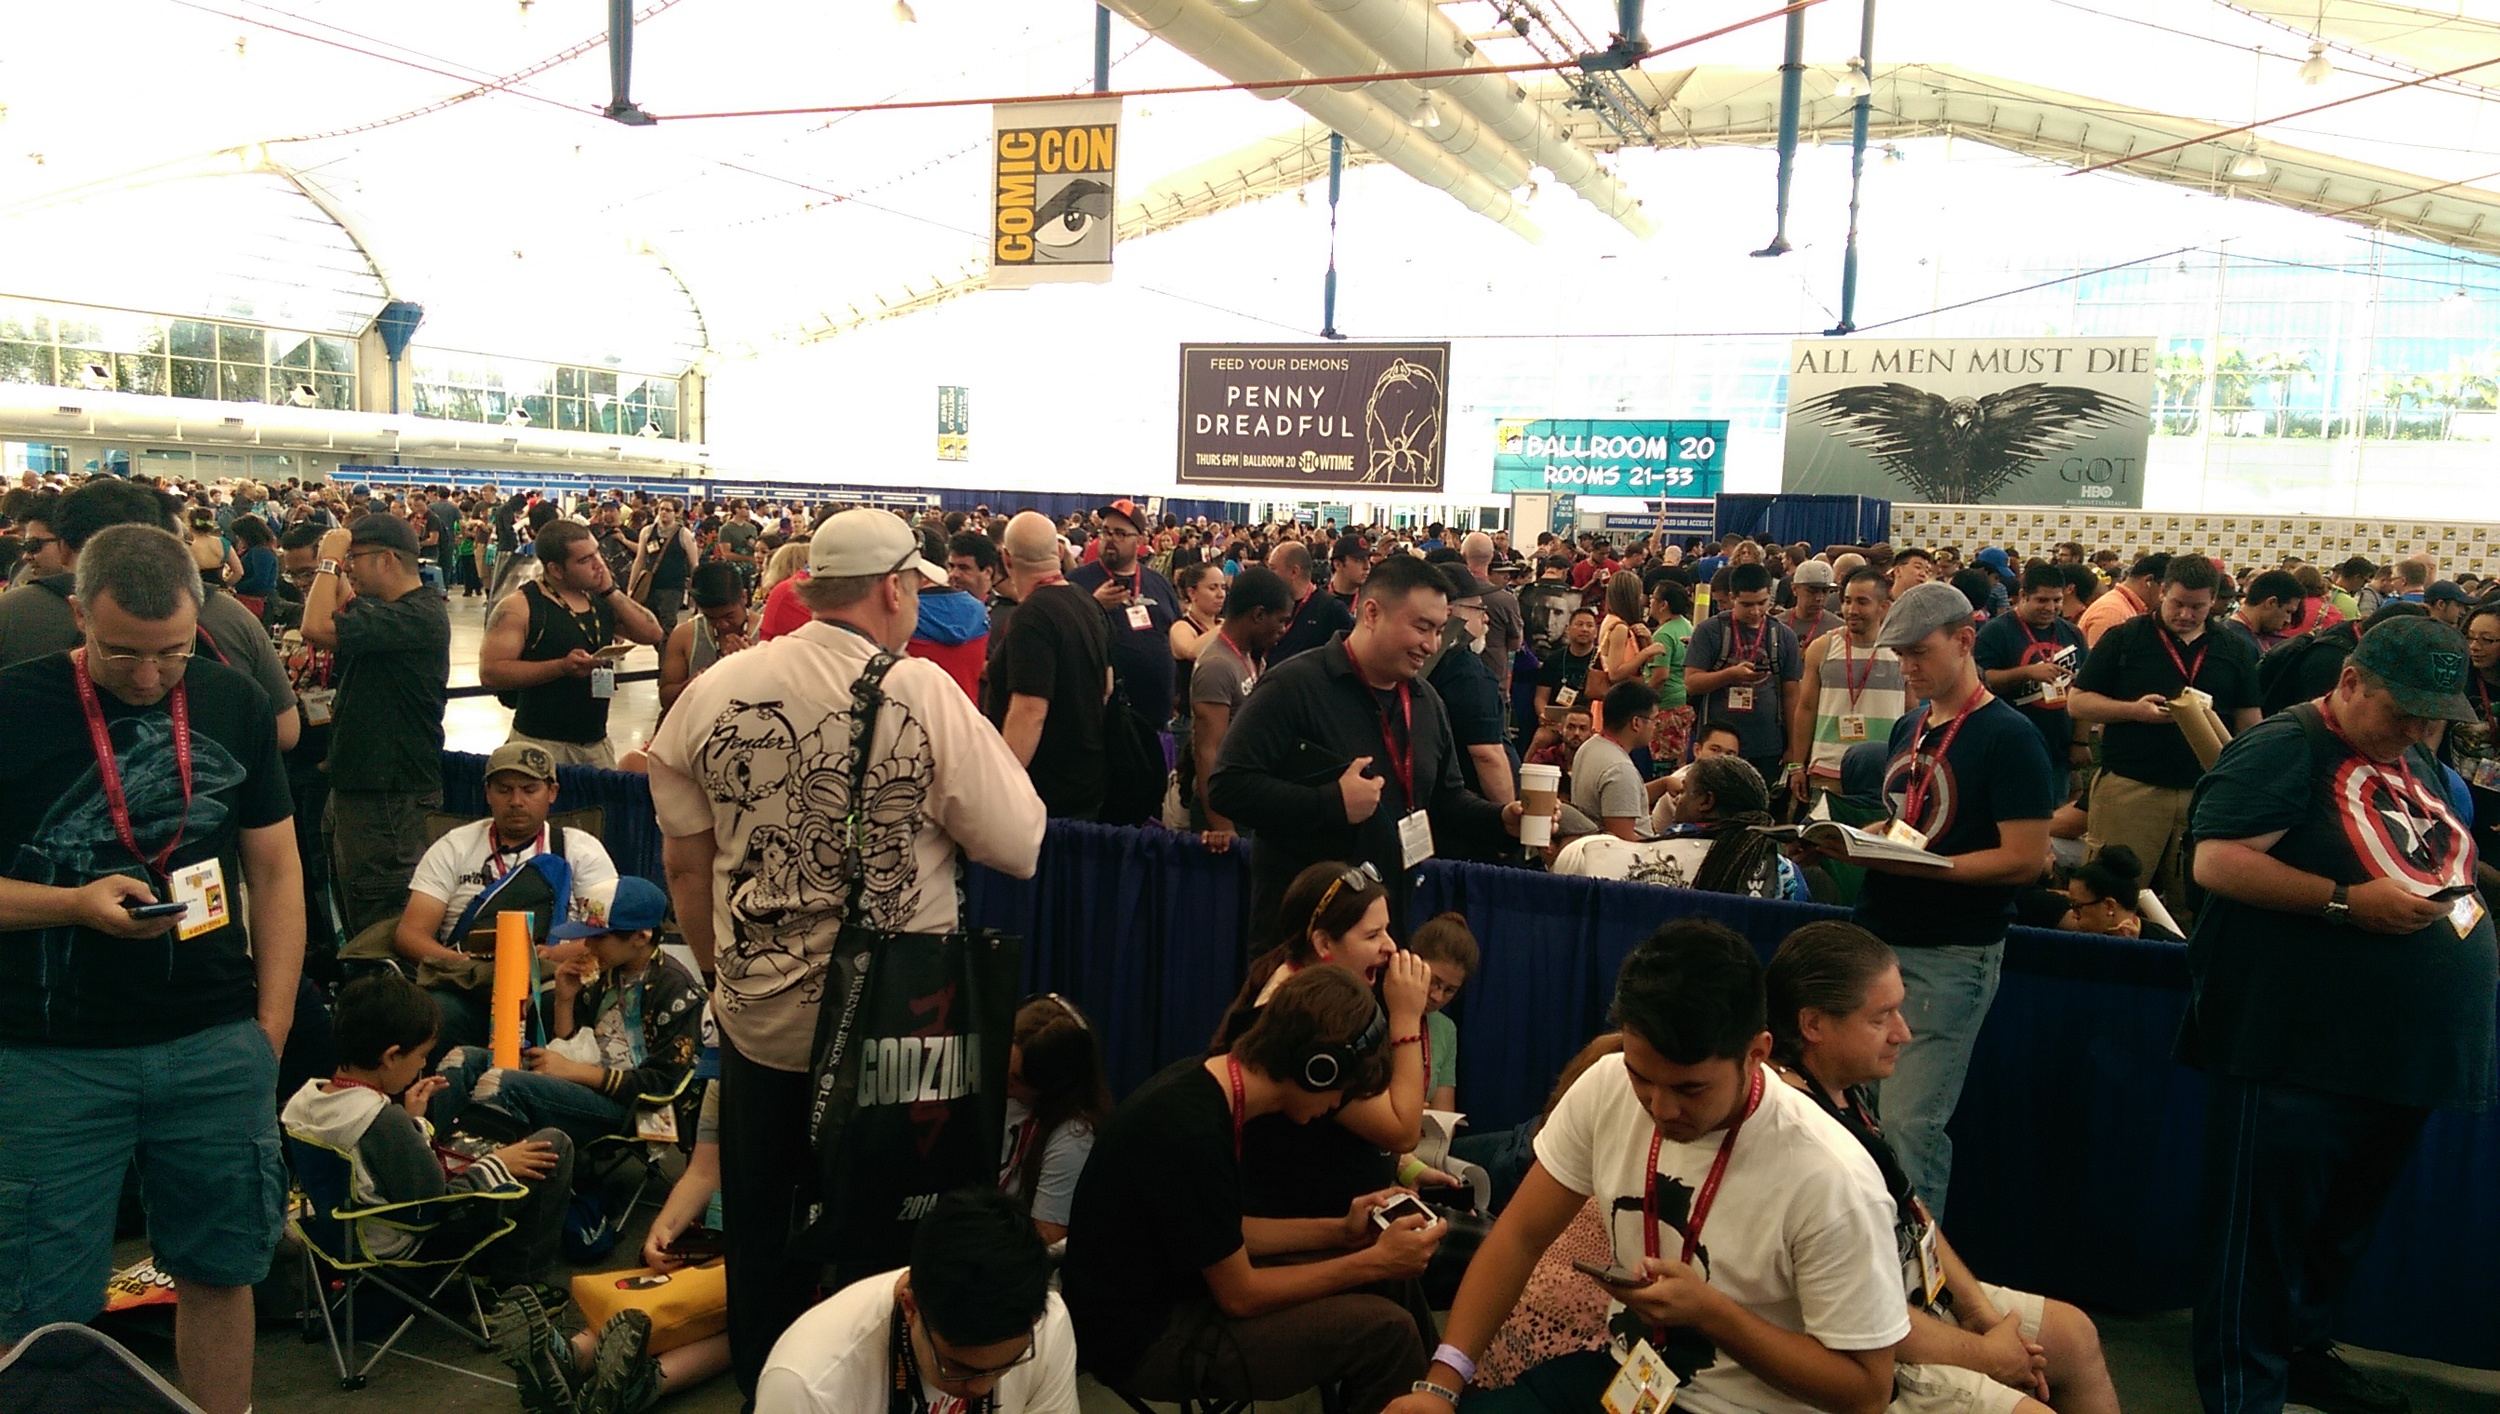 Referred to as Line-Con, this is where you meet & chat with other geeks making temporary friendships.